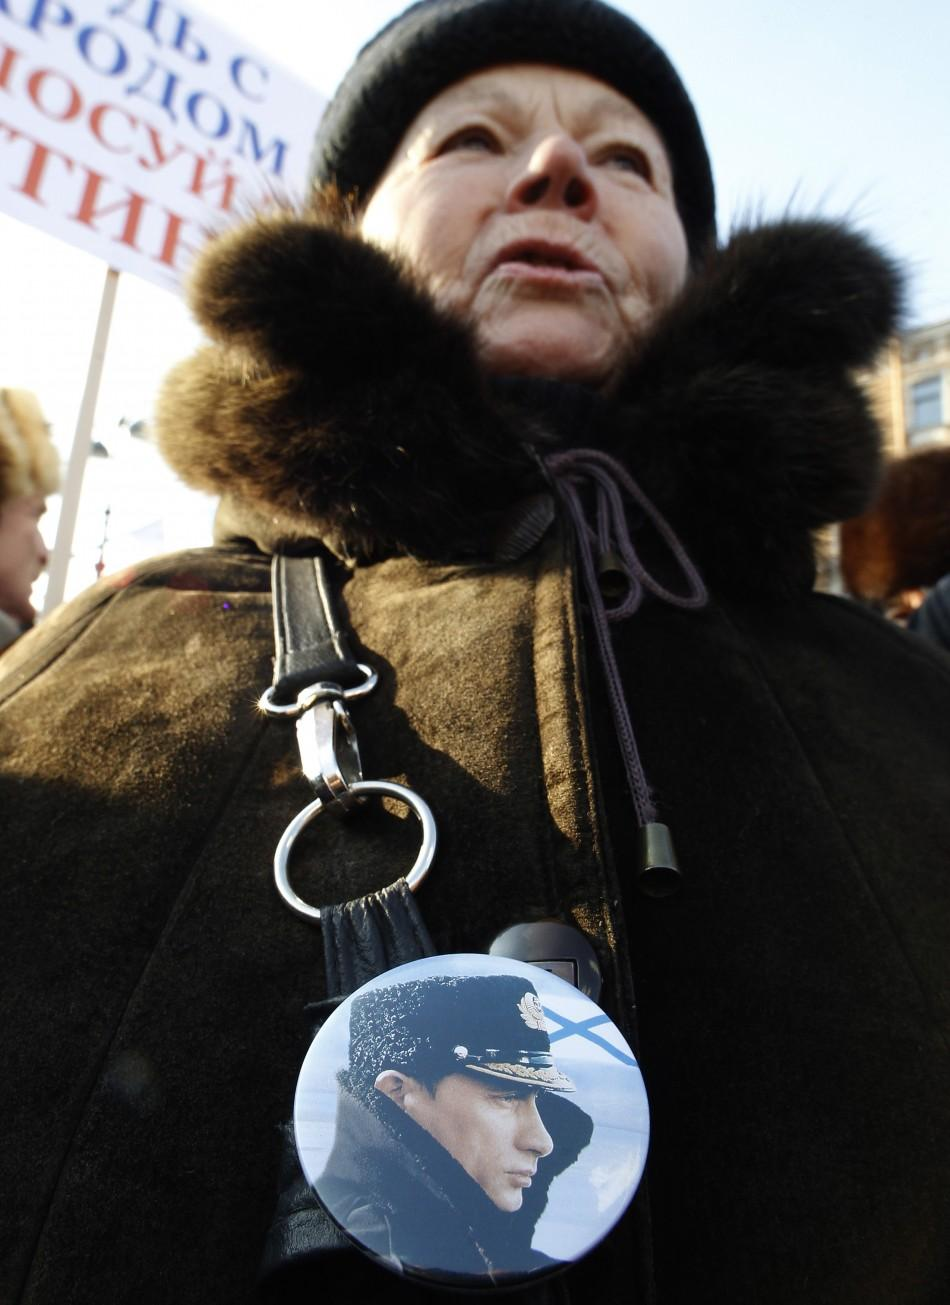 A woman wearing a badge with a portrait of Russian Prime Minister Vladimir Putin attends a rally in support of his presidential candidacy in St.Petersburg, Feb. 18, 2012.